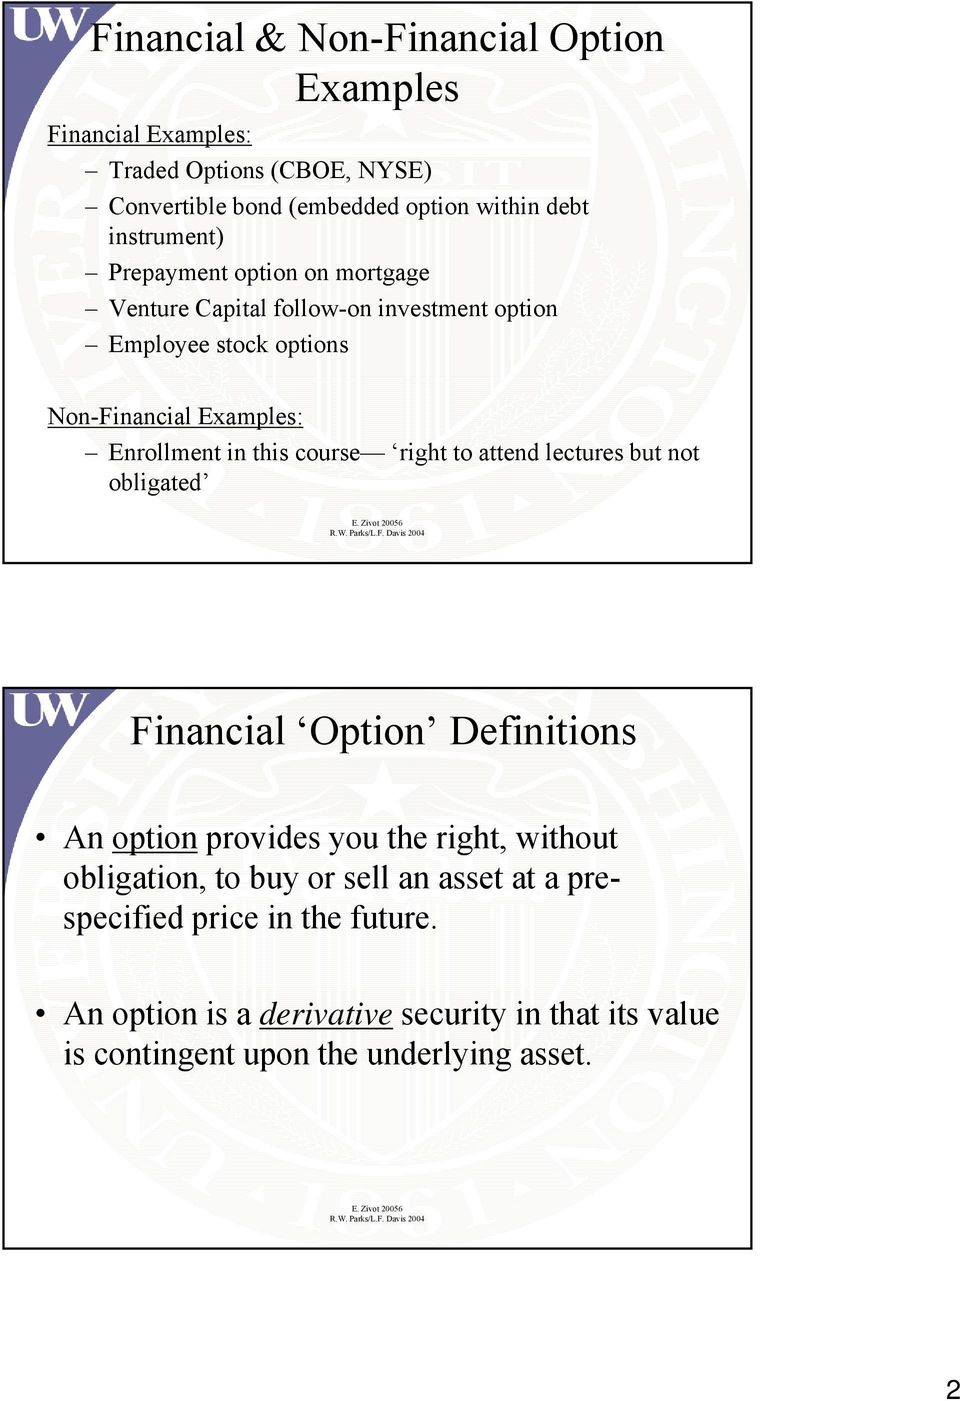 in this course right to attend lectures but not obligated Financial Option Definitions An option provides you the right, without obligation, to